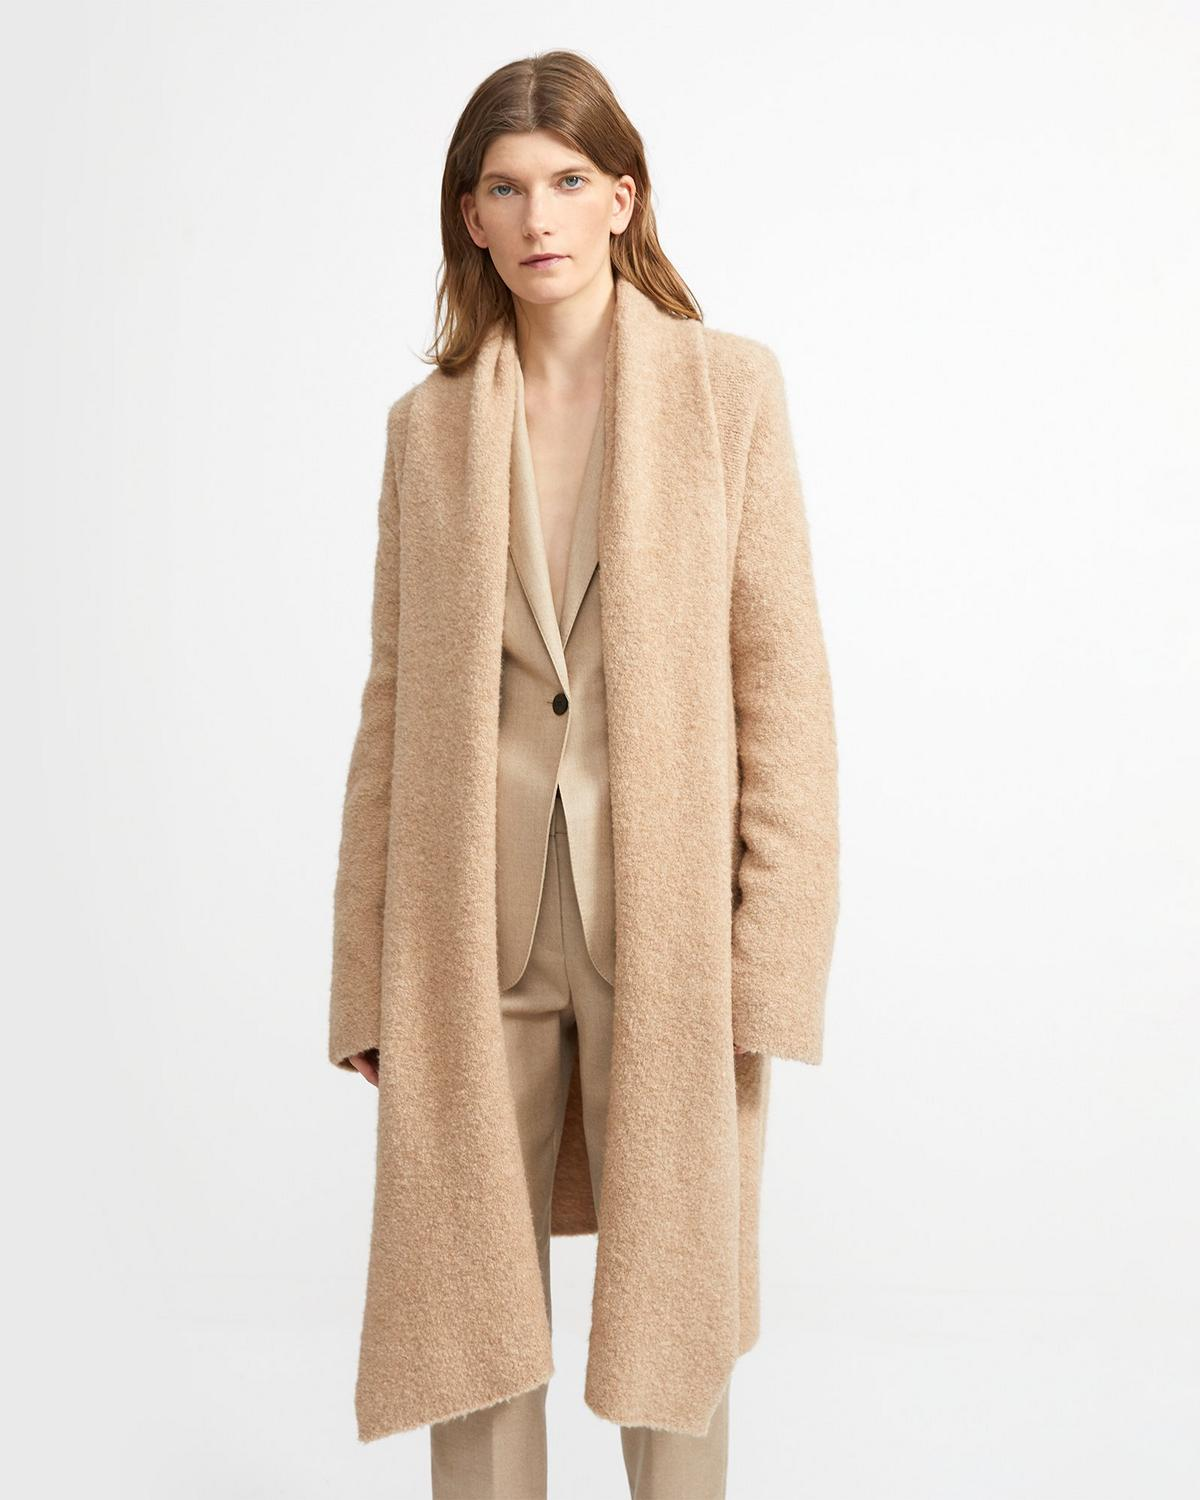 Draped Cardigan in Camel Boucle